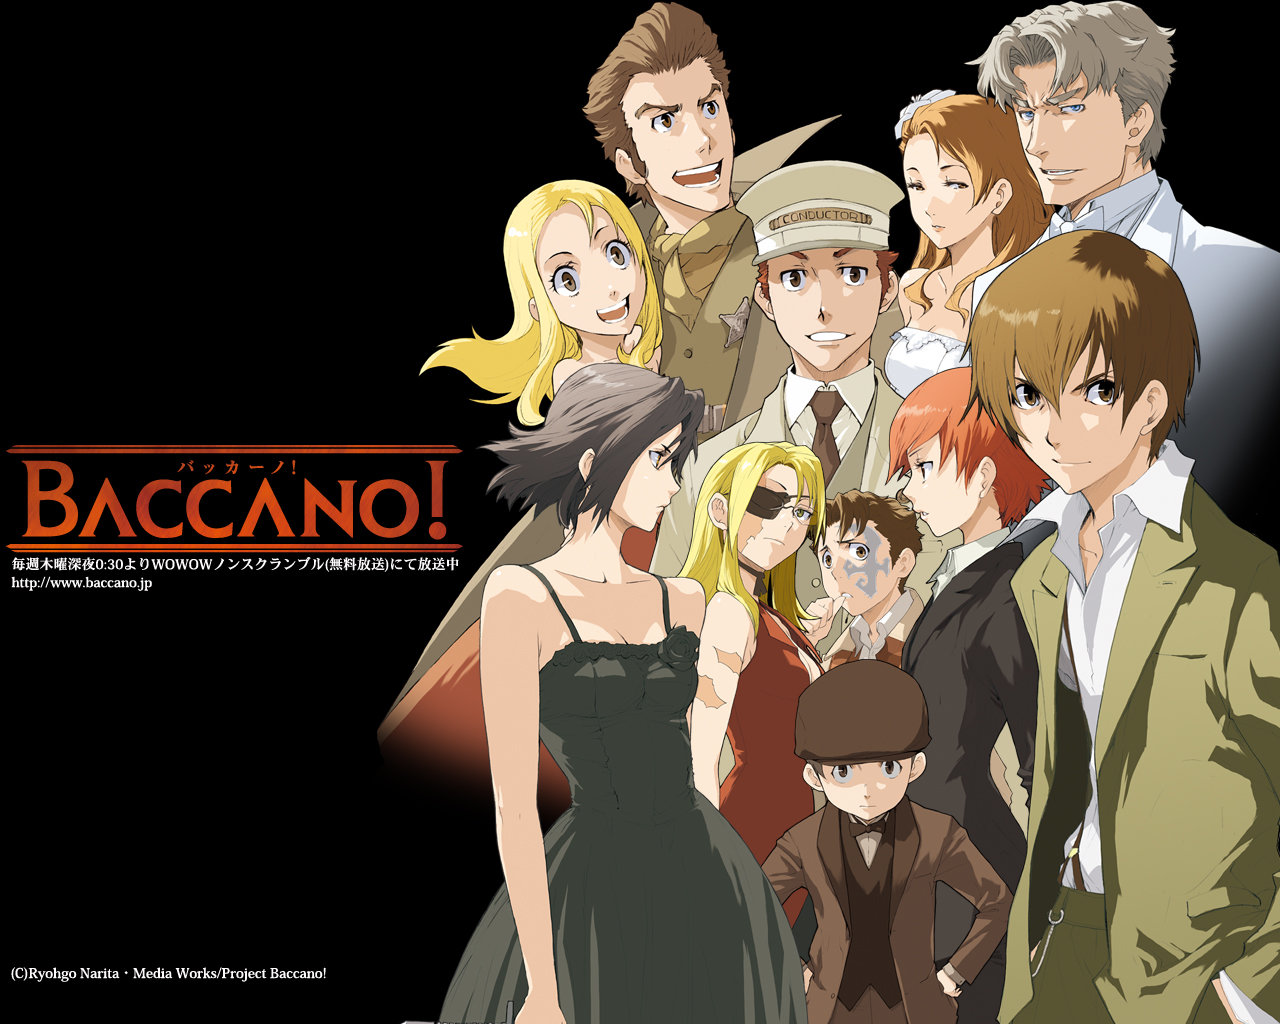 Download hd 1280x1024 Baccano! PC wallpaper ID:324367 for free